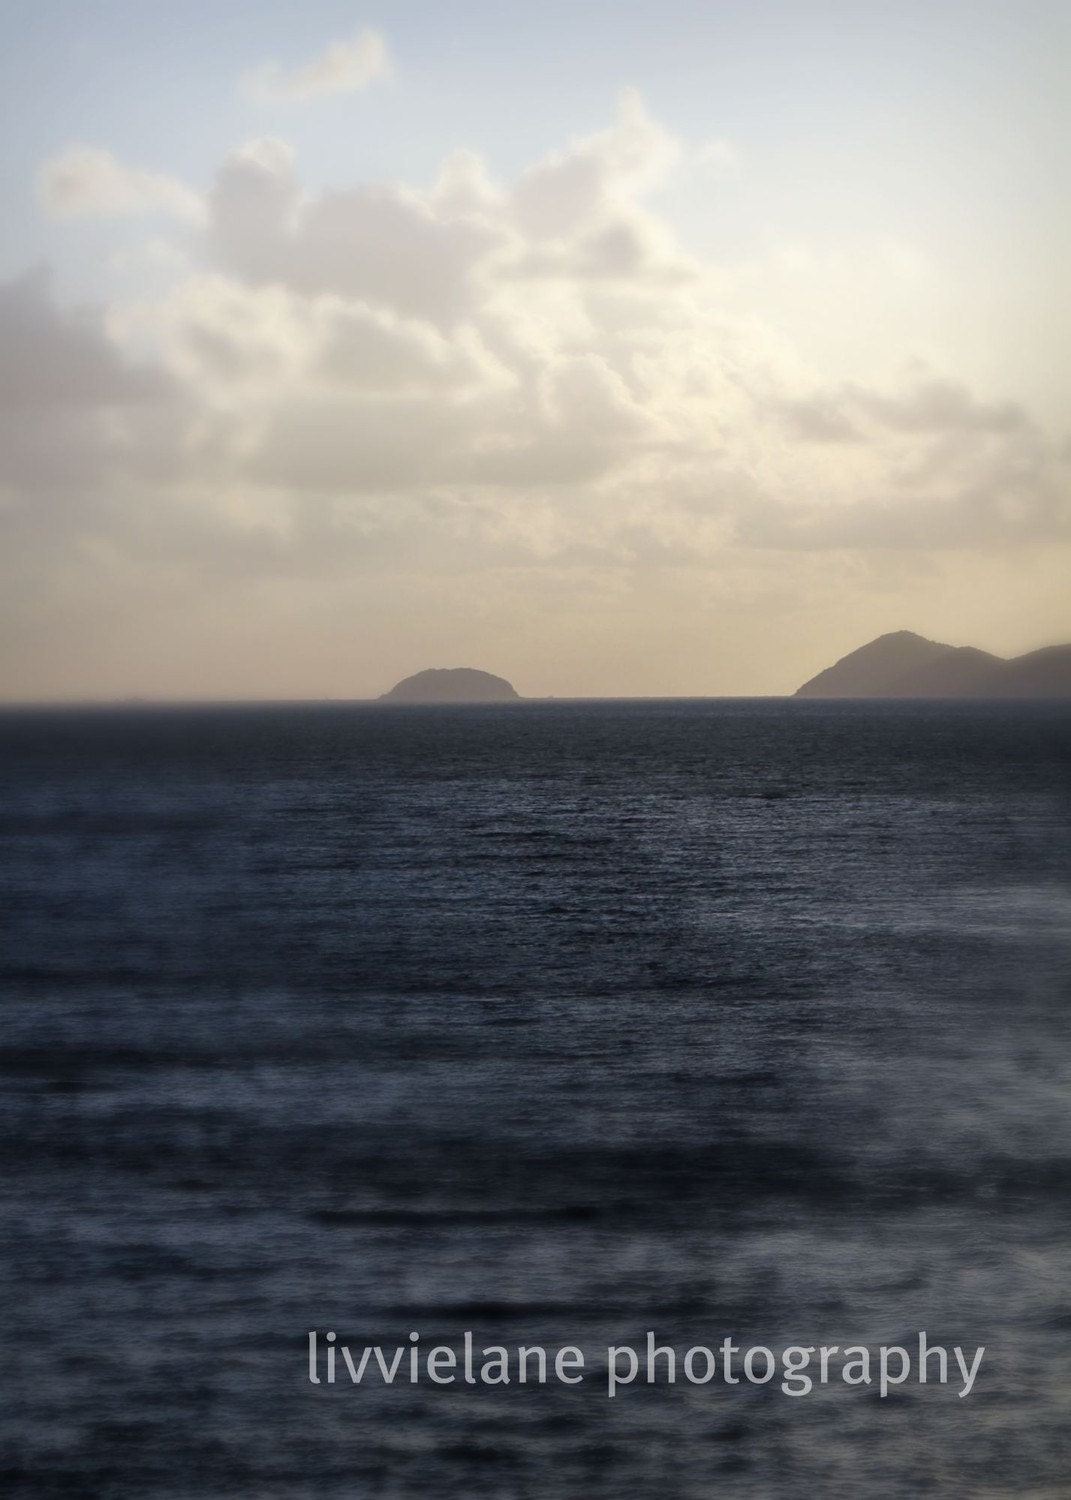 Ocean photography - Far and Away - 8 x 10 - fine art color photograph - dark shimmering blues and pastels - livvielane